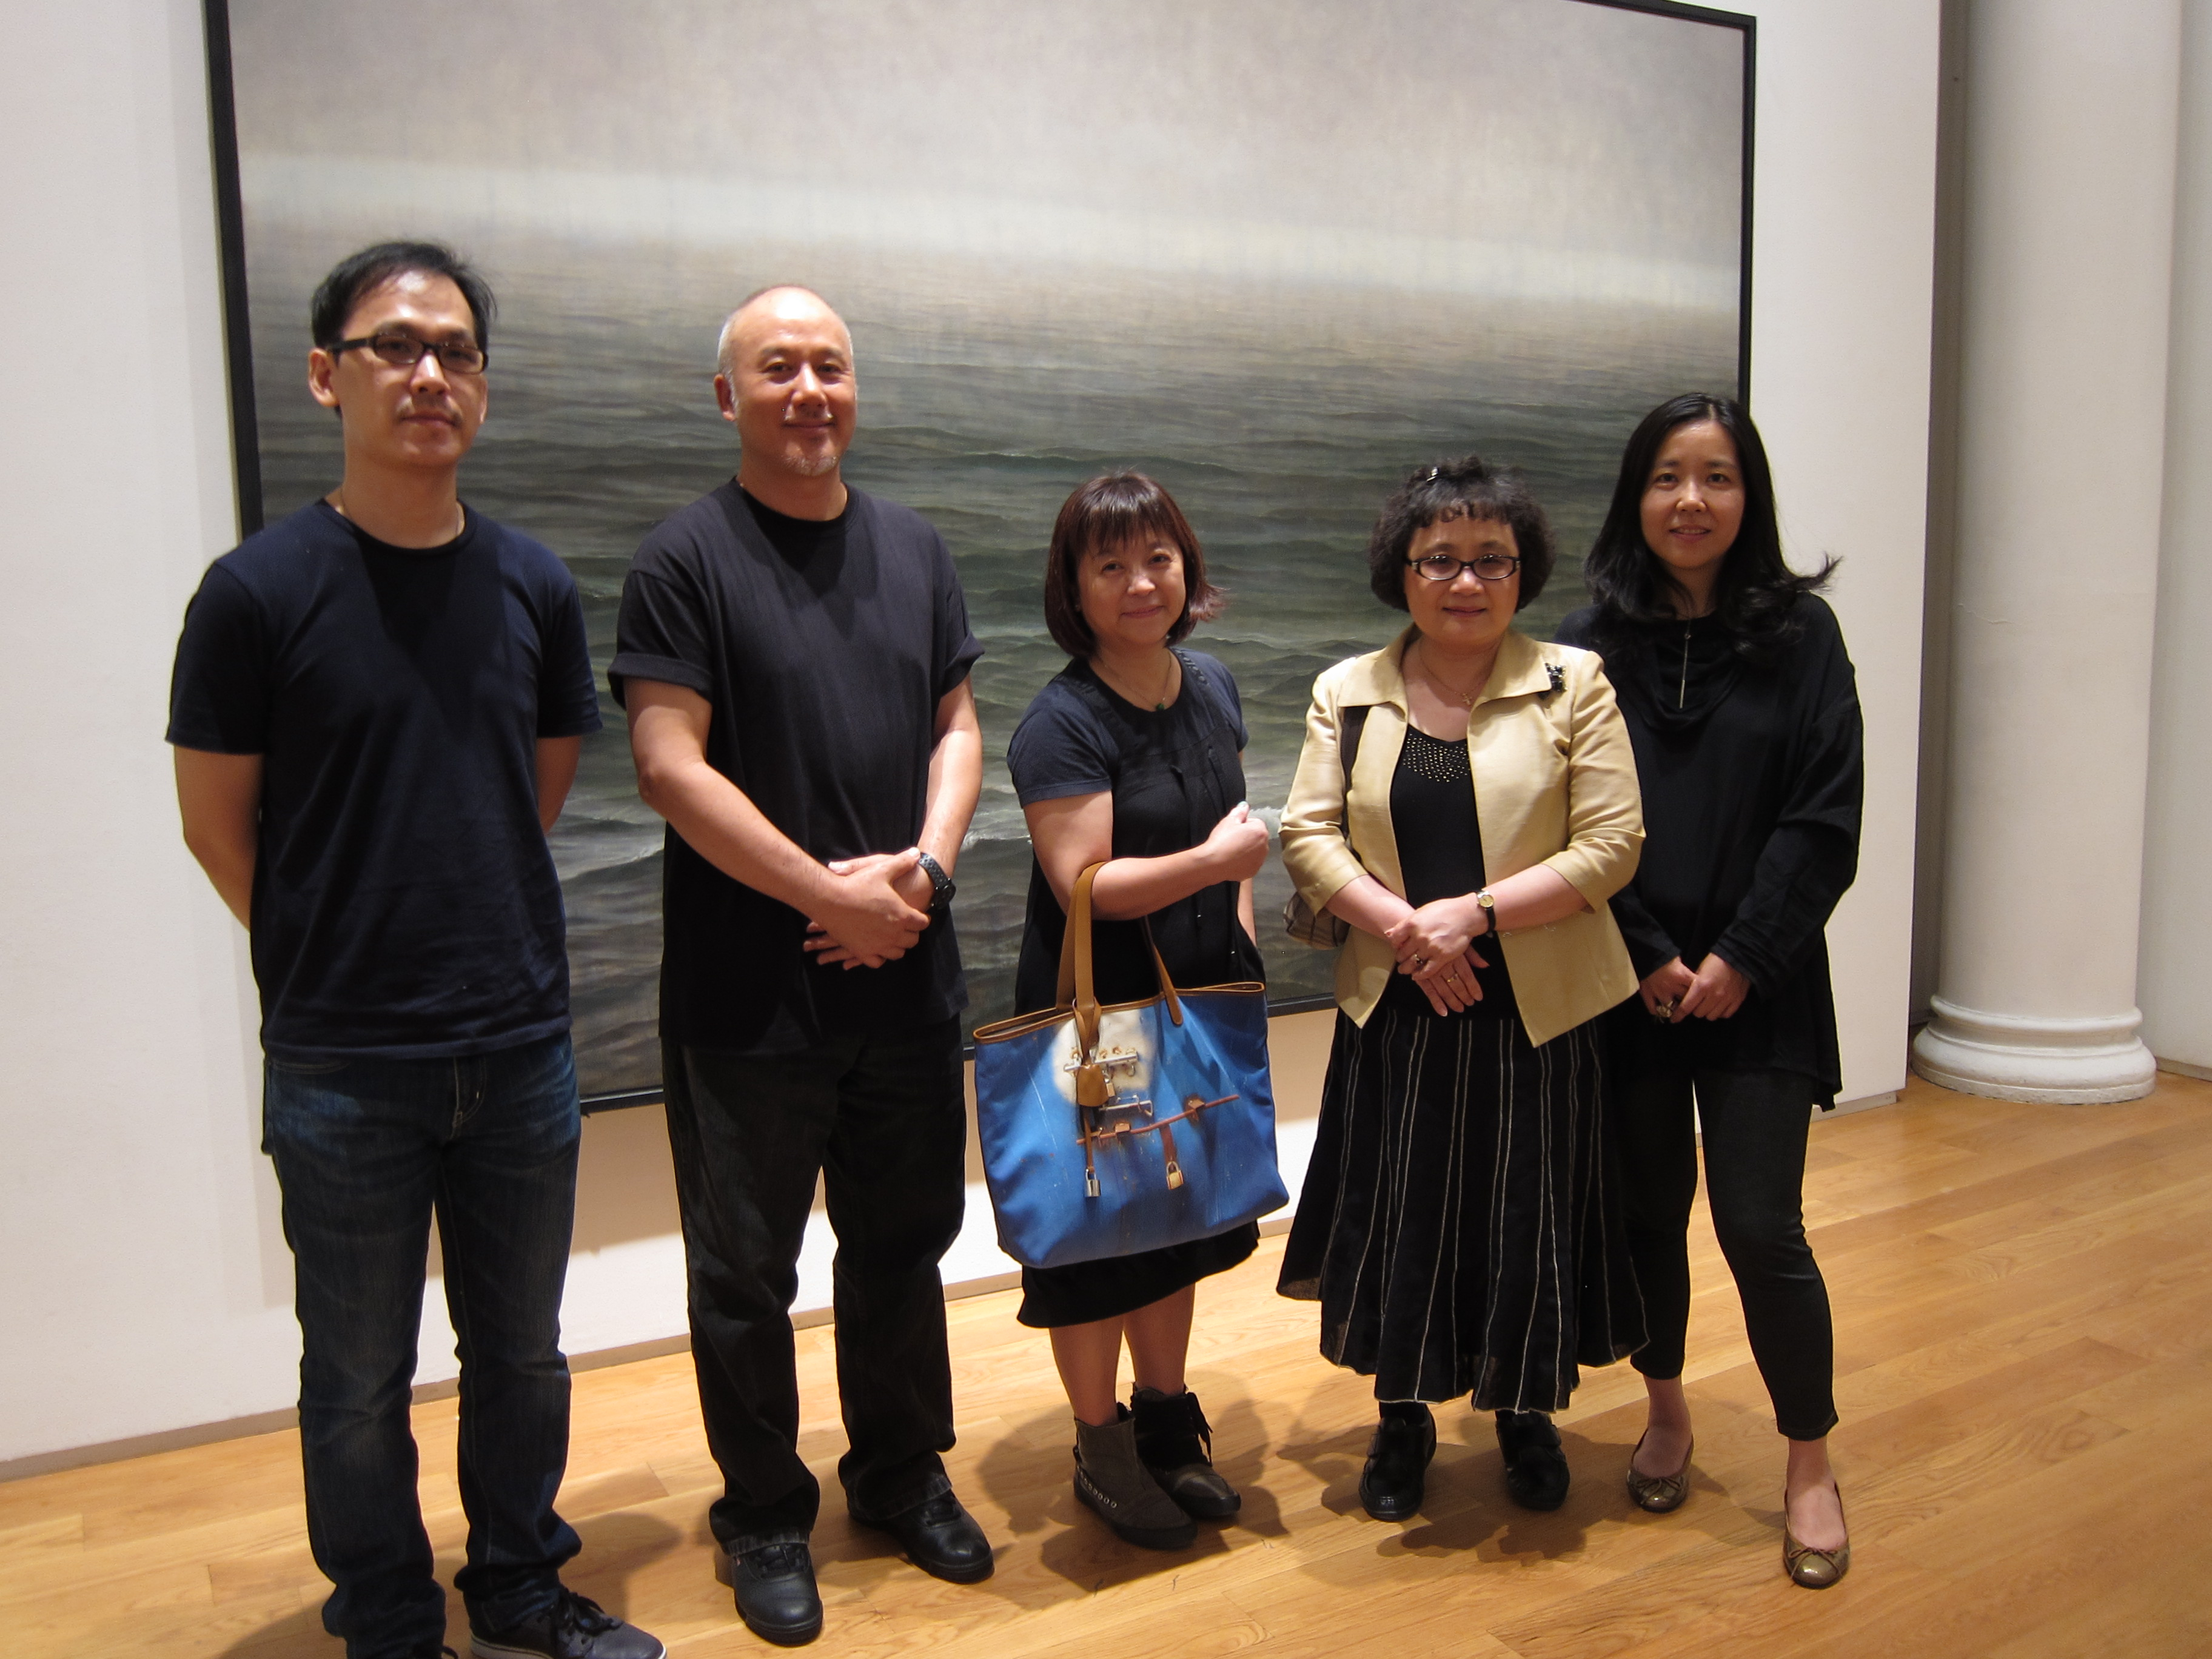 TAIPEI CULTURAL CENTER in New York invited AsianInNY to attend press viewing of the exhibition...